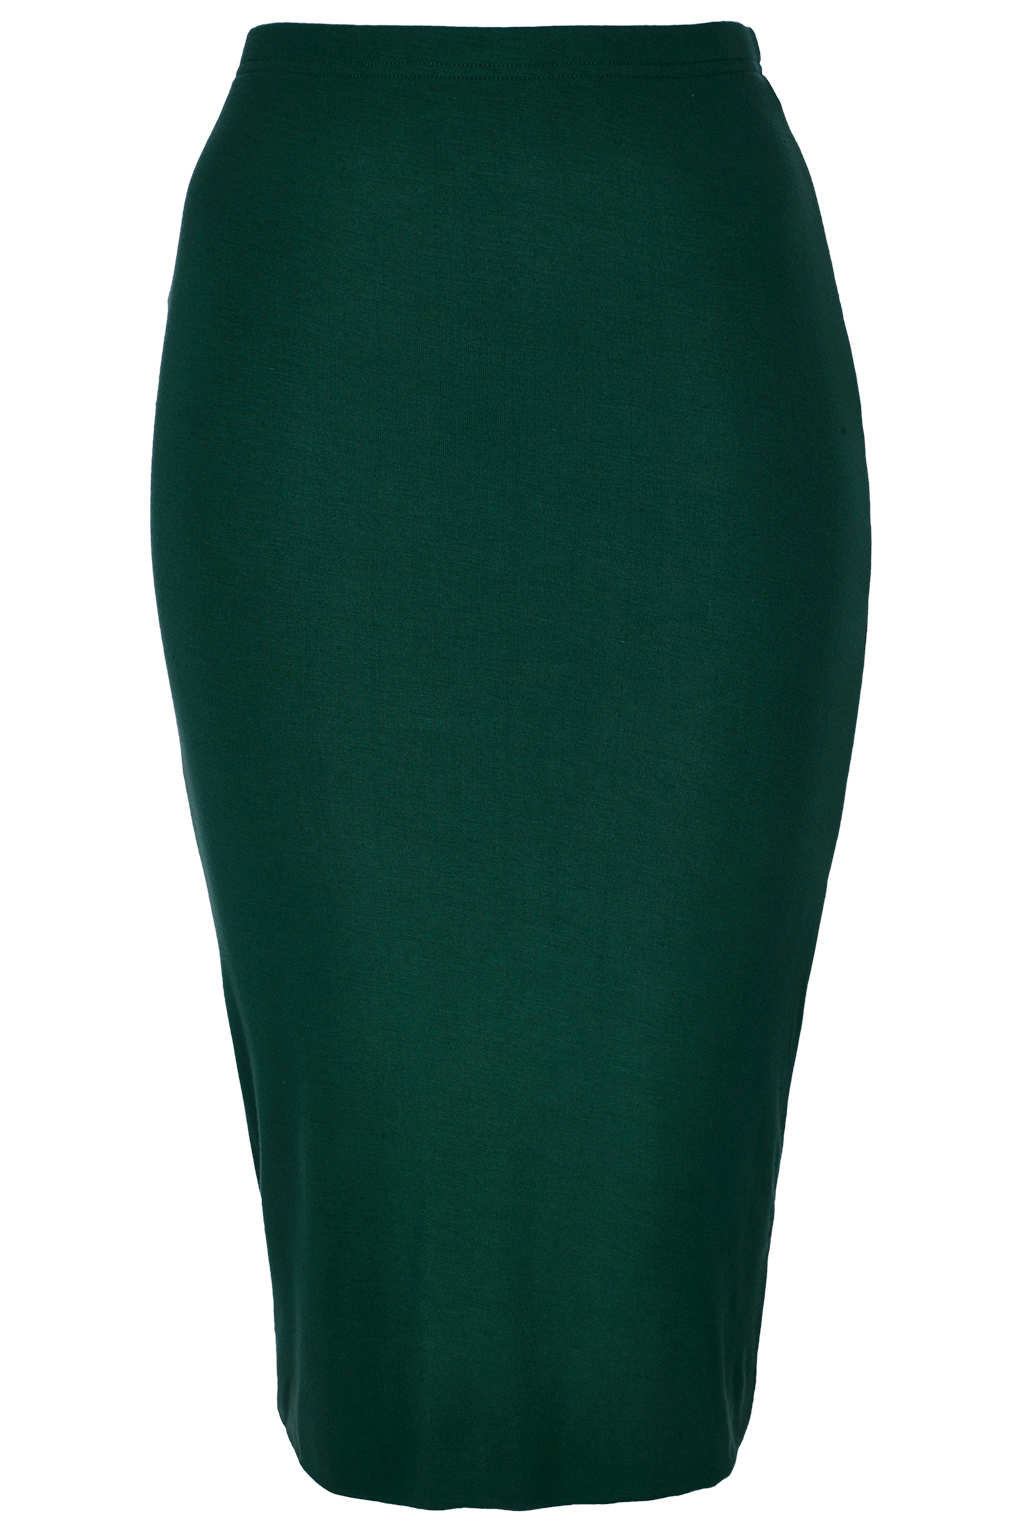 Topshop Dark Green Double Layer Tube Skirt in Green | Lyst